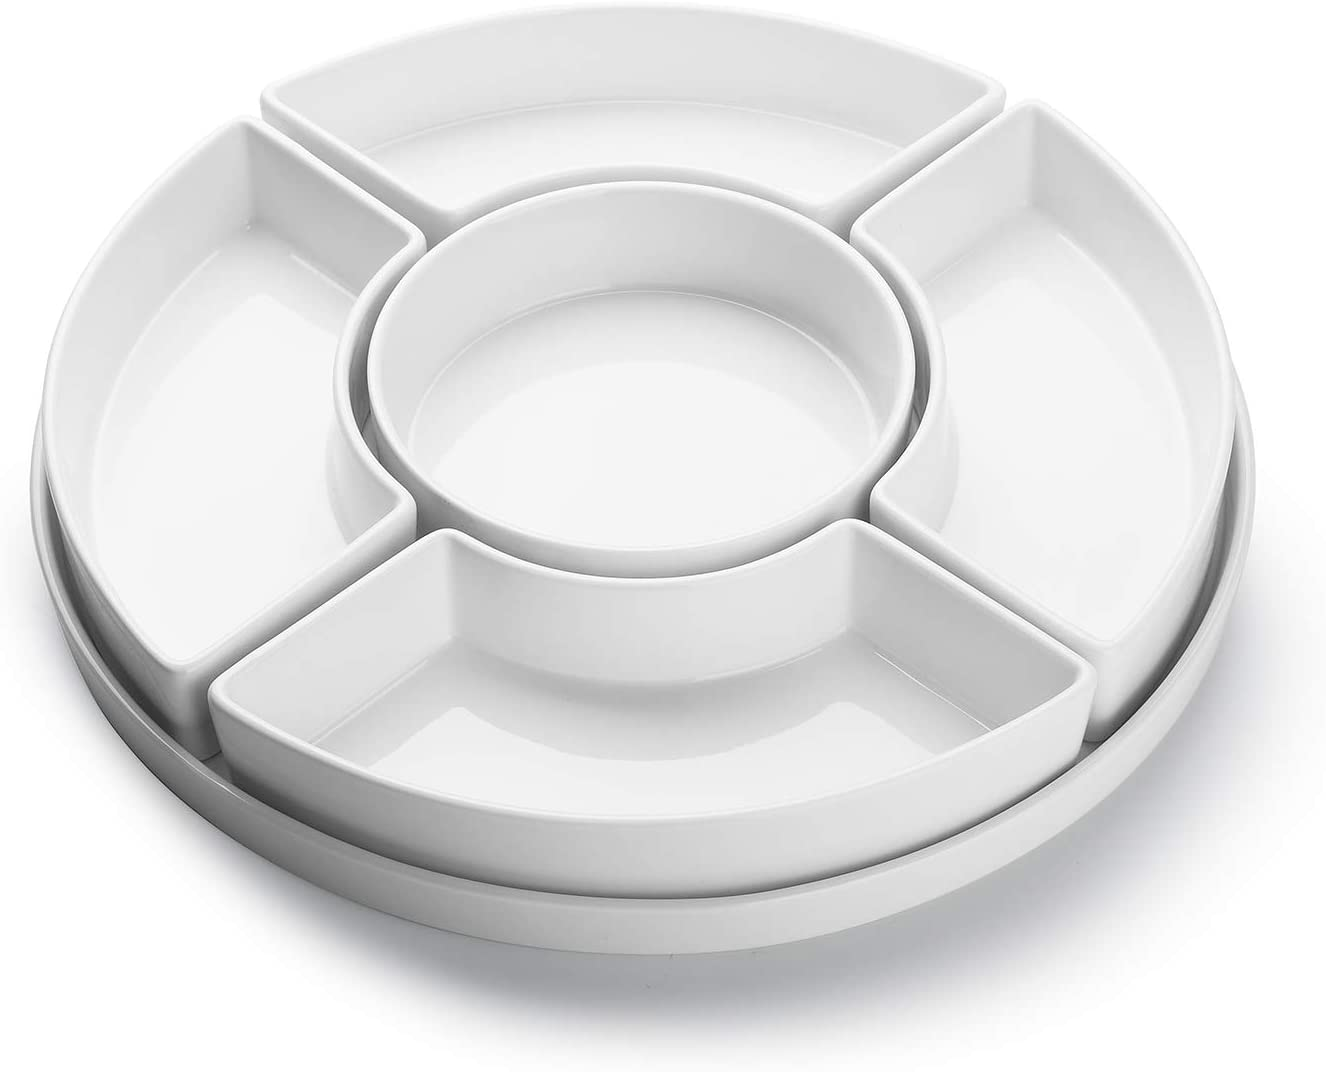 Sweese 707.001 Porcelain Divided Serving Dishes, Relish Tray, Serving Bowls for Parties - Perfect for Chips and Dip, Veggies, Candy and Snacks